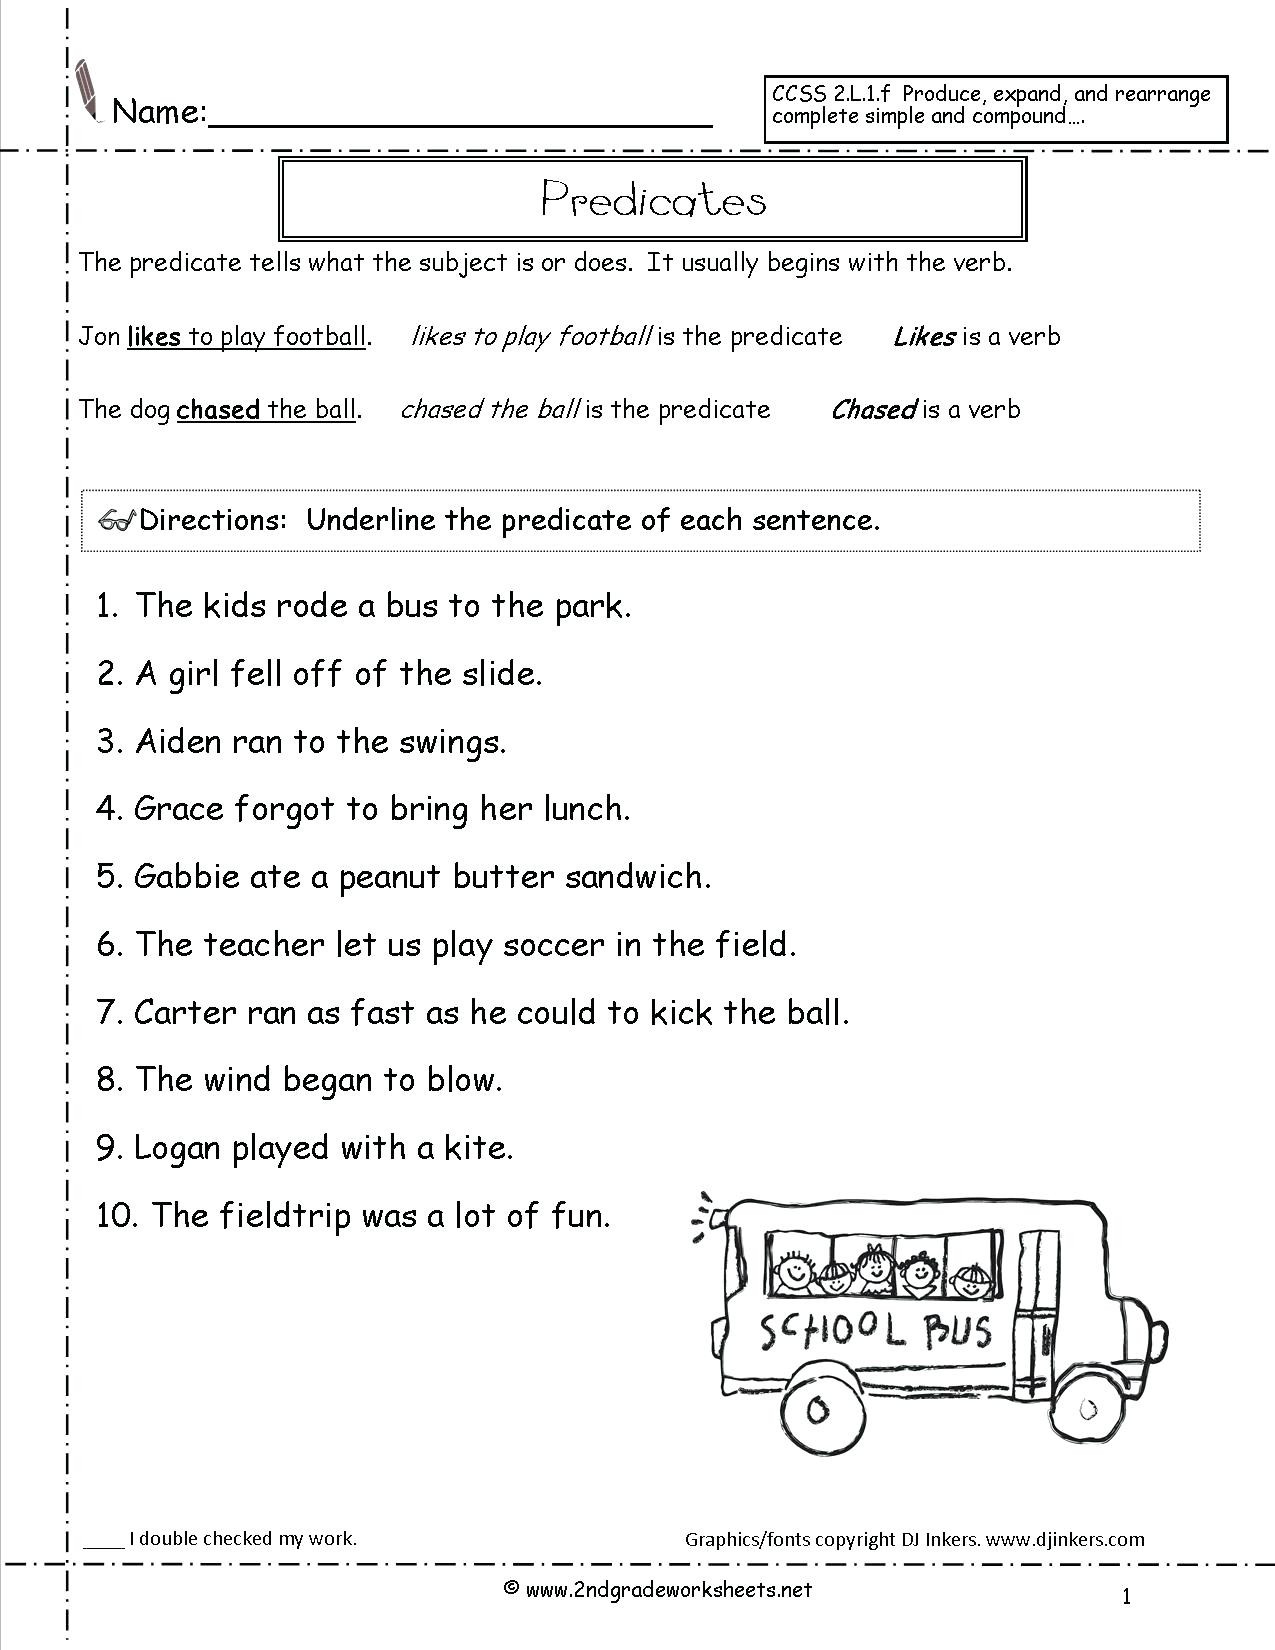 Free Printable Sentence Structure Worksheets Free Sentence Structure Worksheets Sentence Worksheet